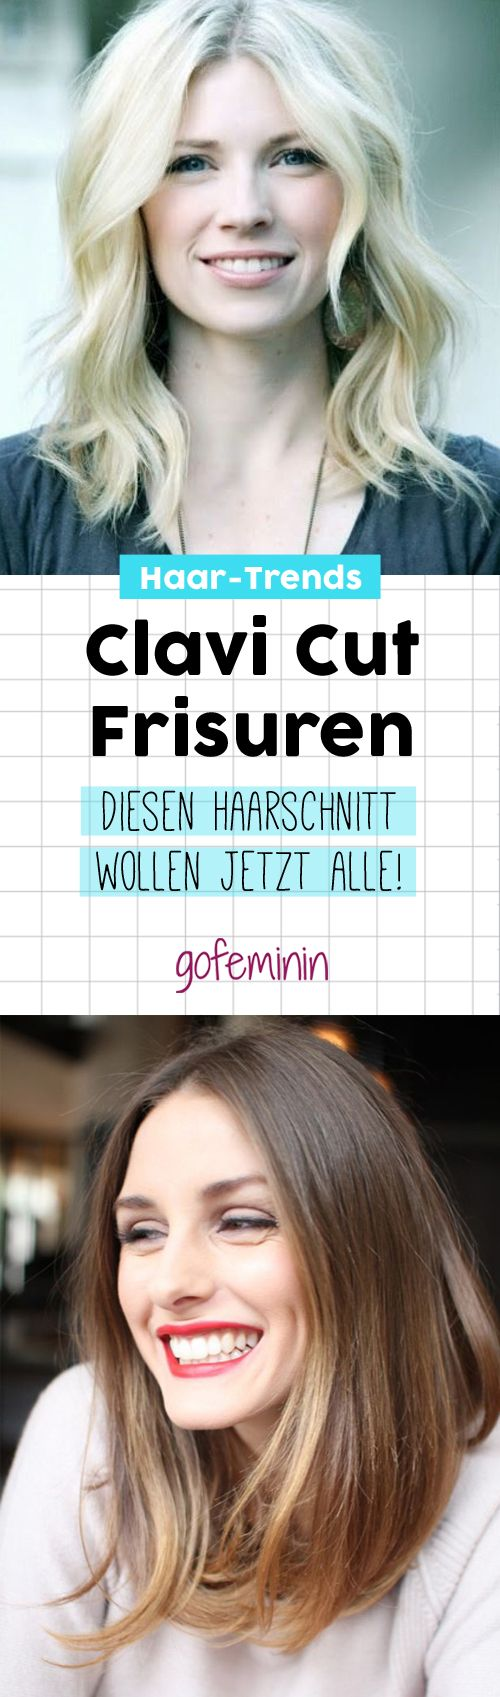 Clavi-Cut: So you wear the new trend hairstyle from Hollywood